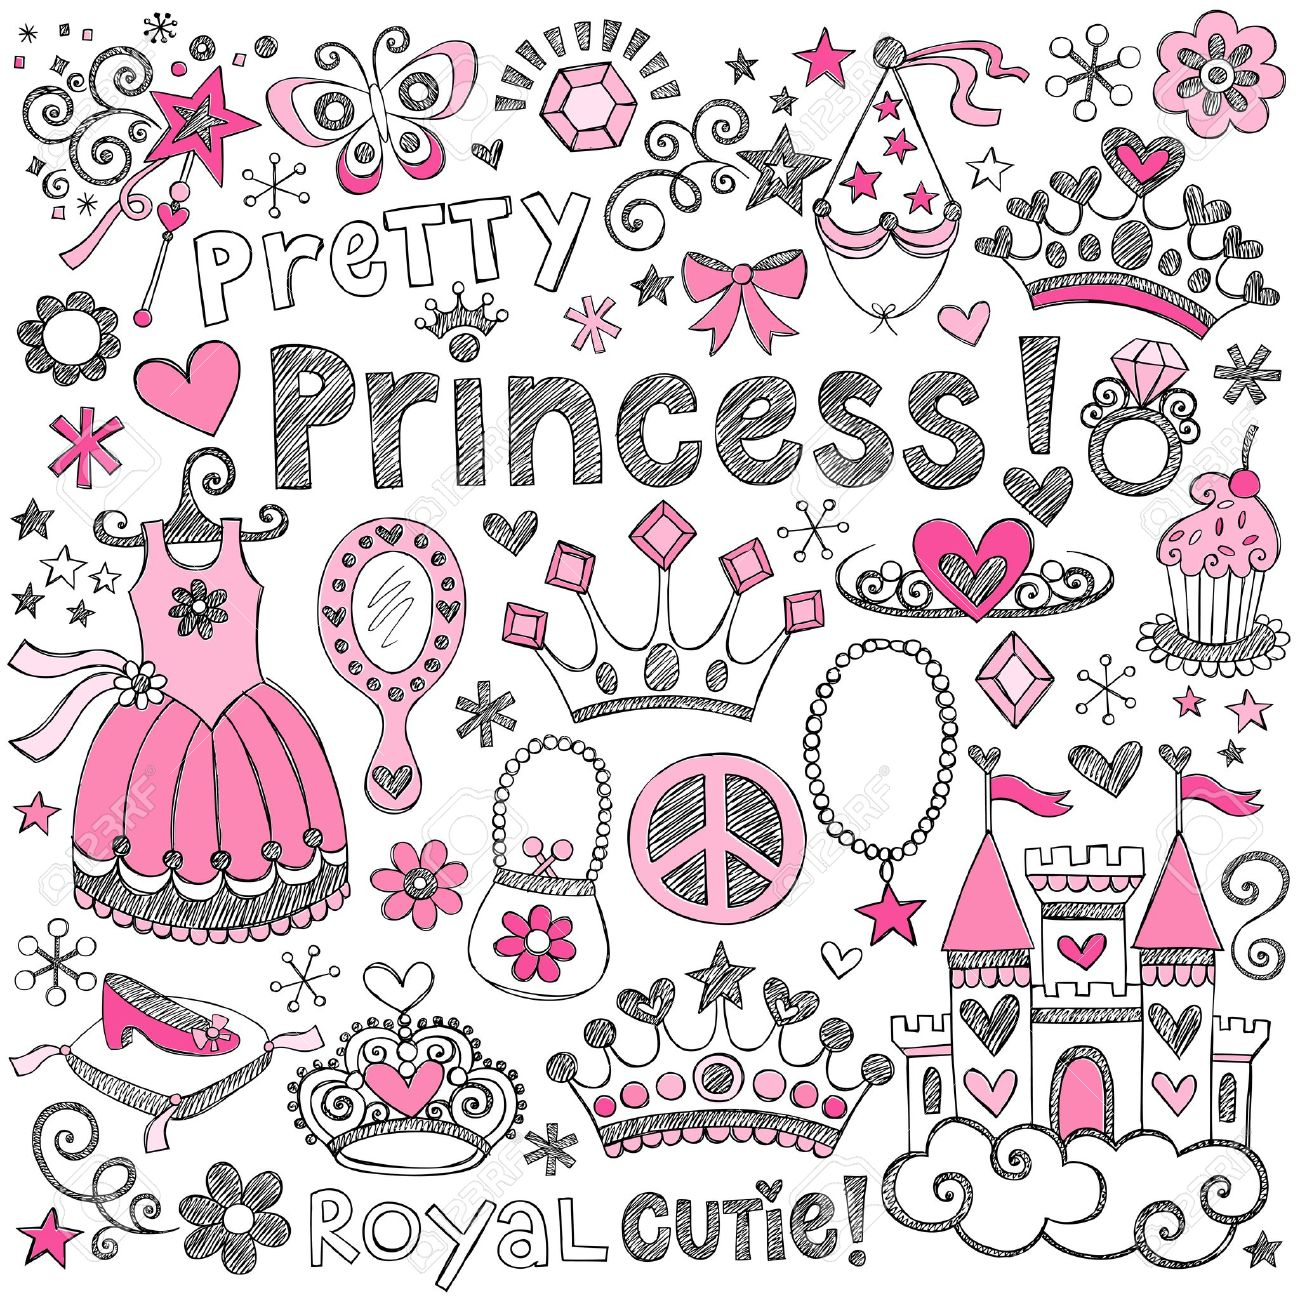 8,031 Girly Stock Vector Illustration And Royalty Free Girly Clipart